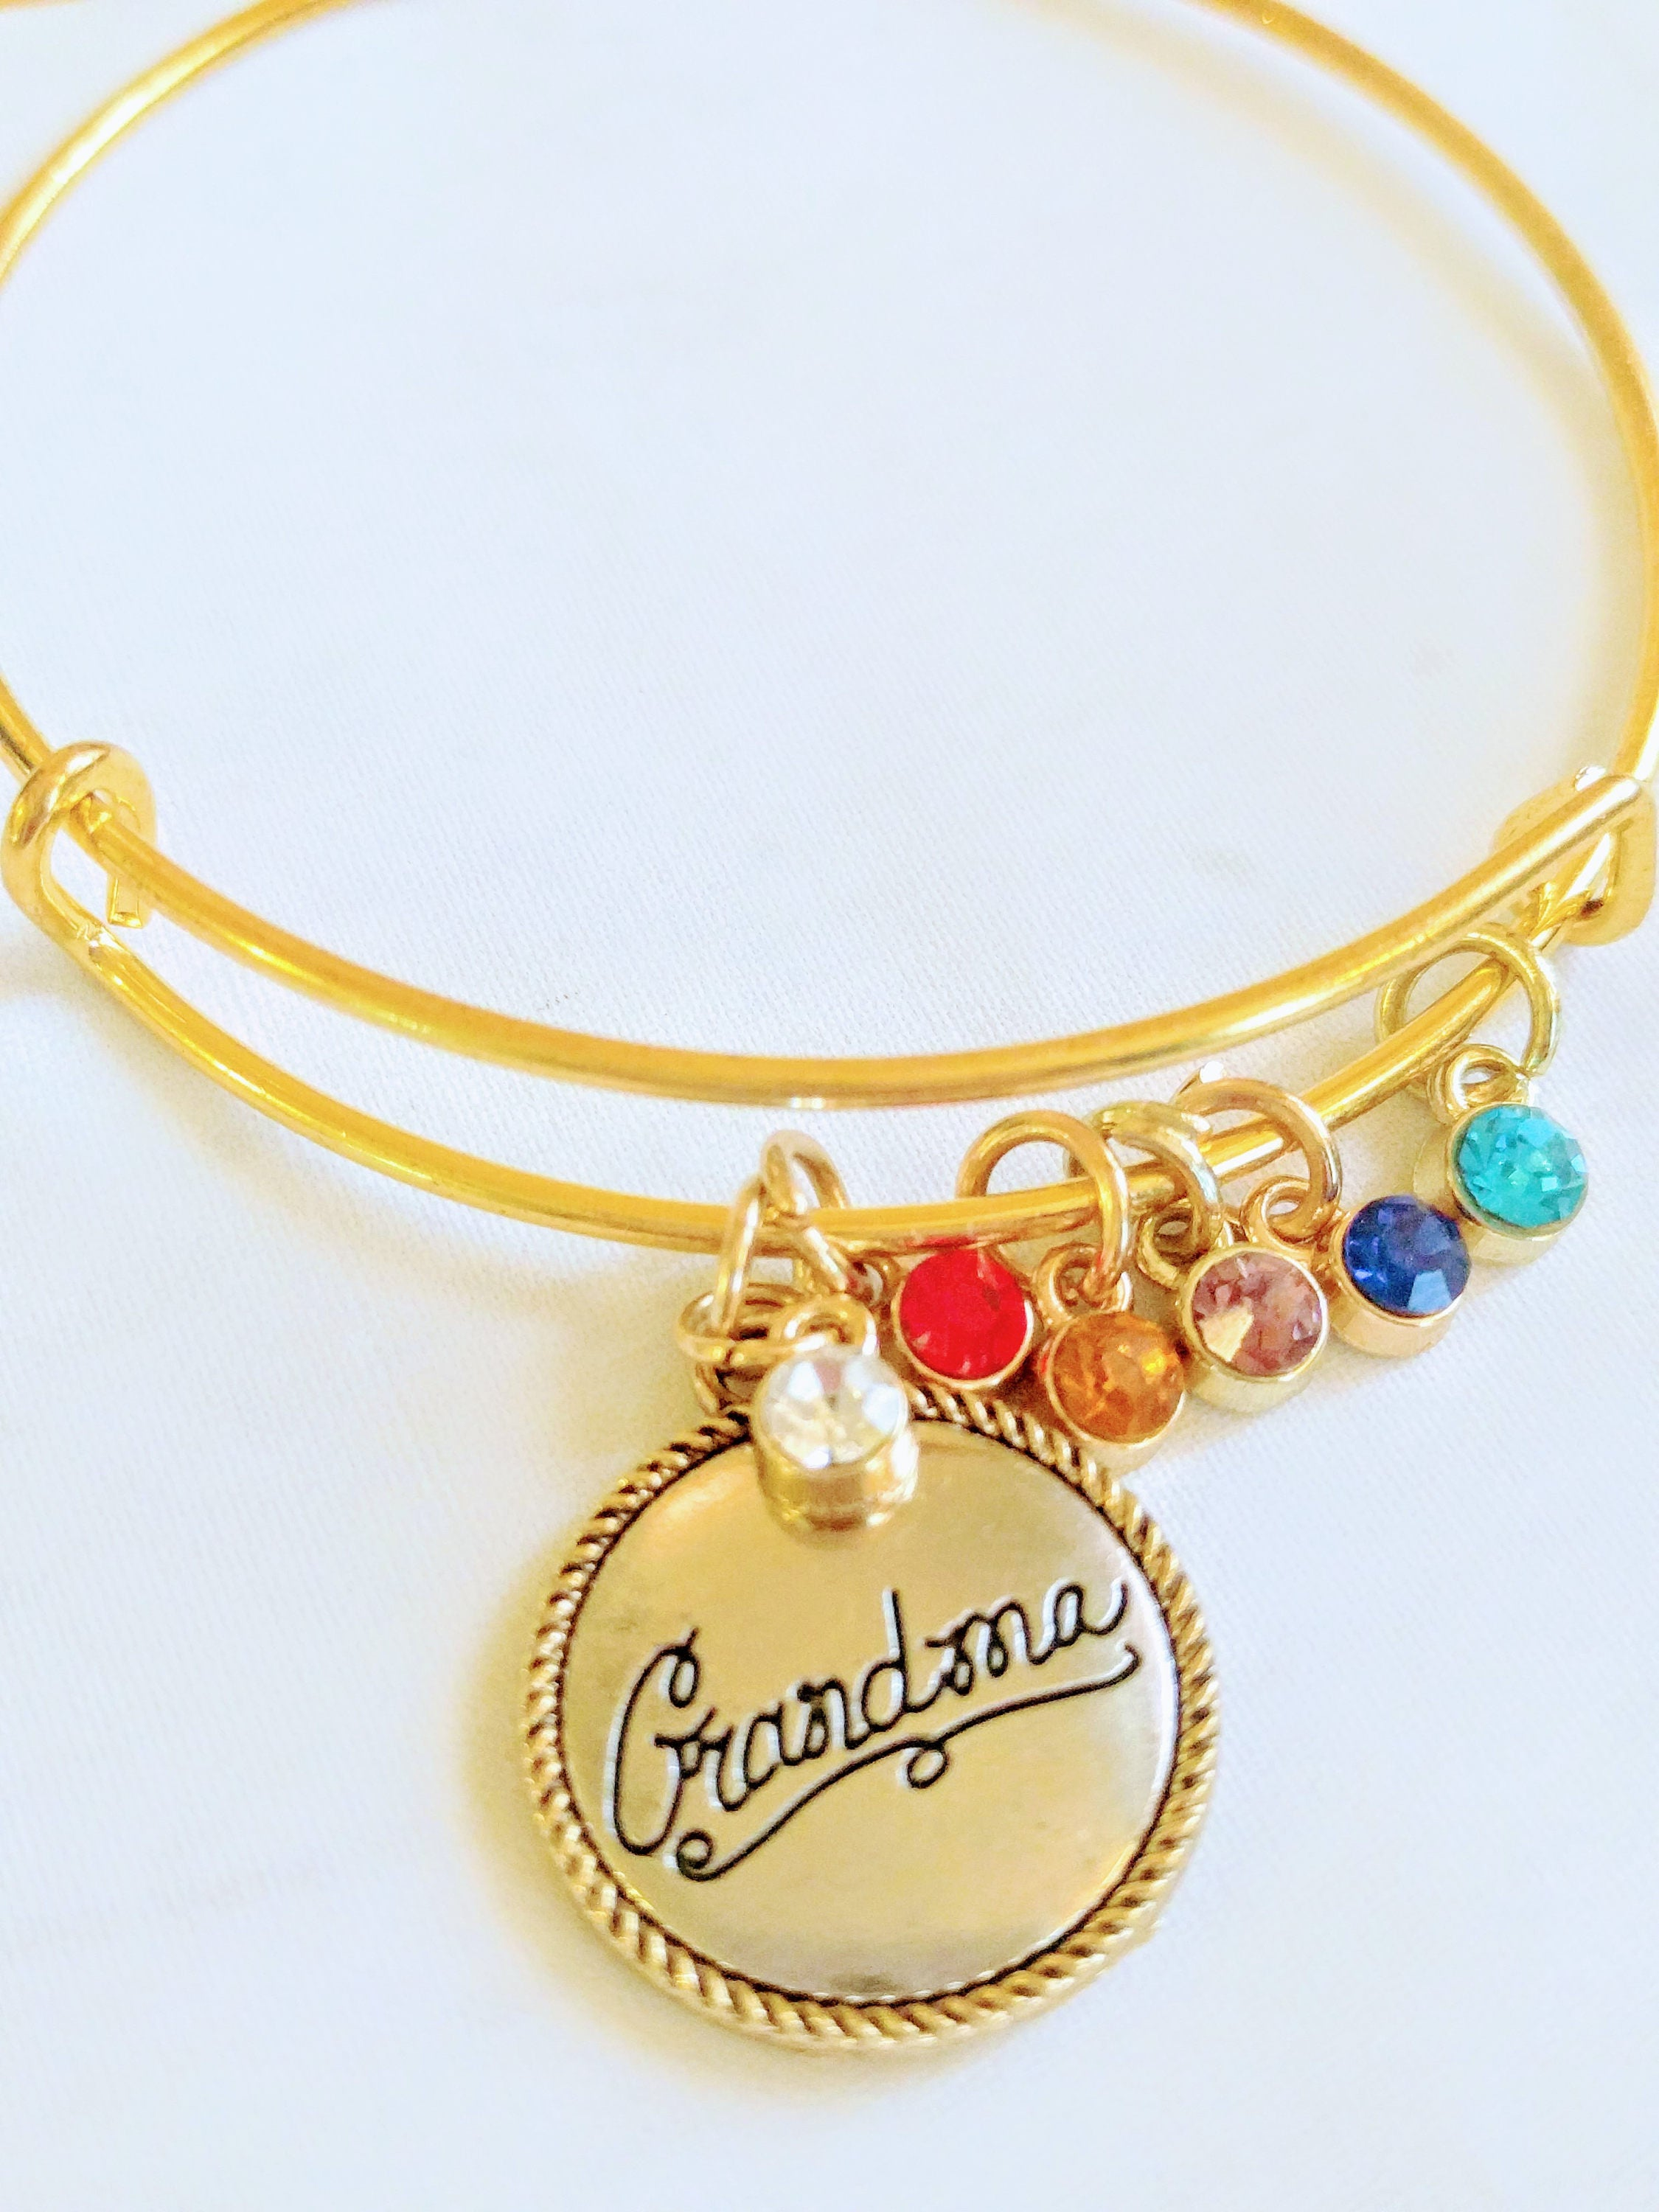 capture bangles gold bracelet rose of vermeil gb charm hires bracelets links london en bangle